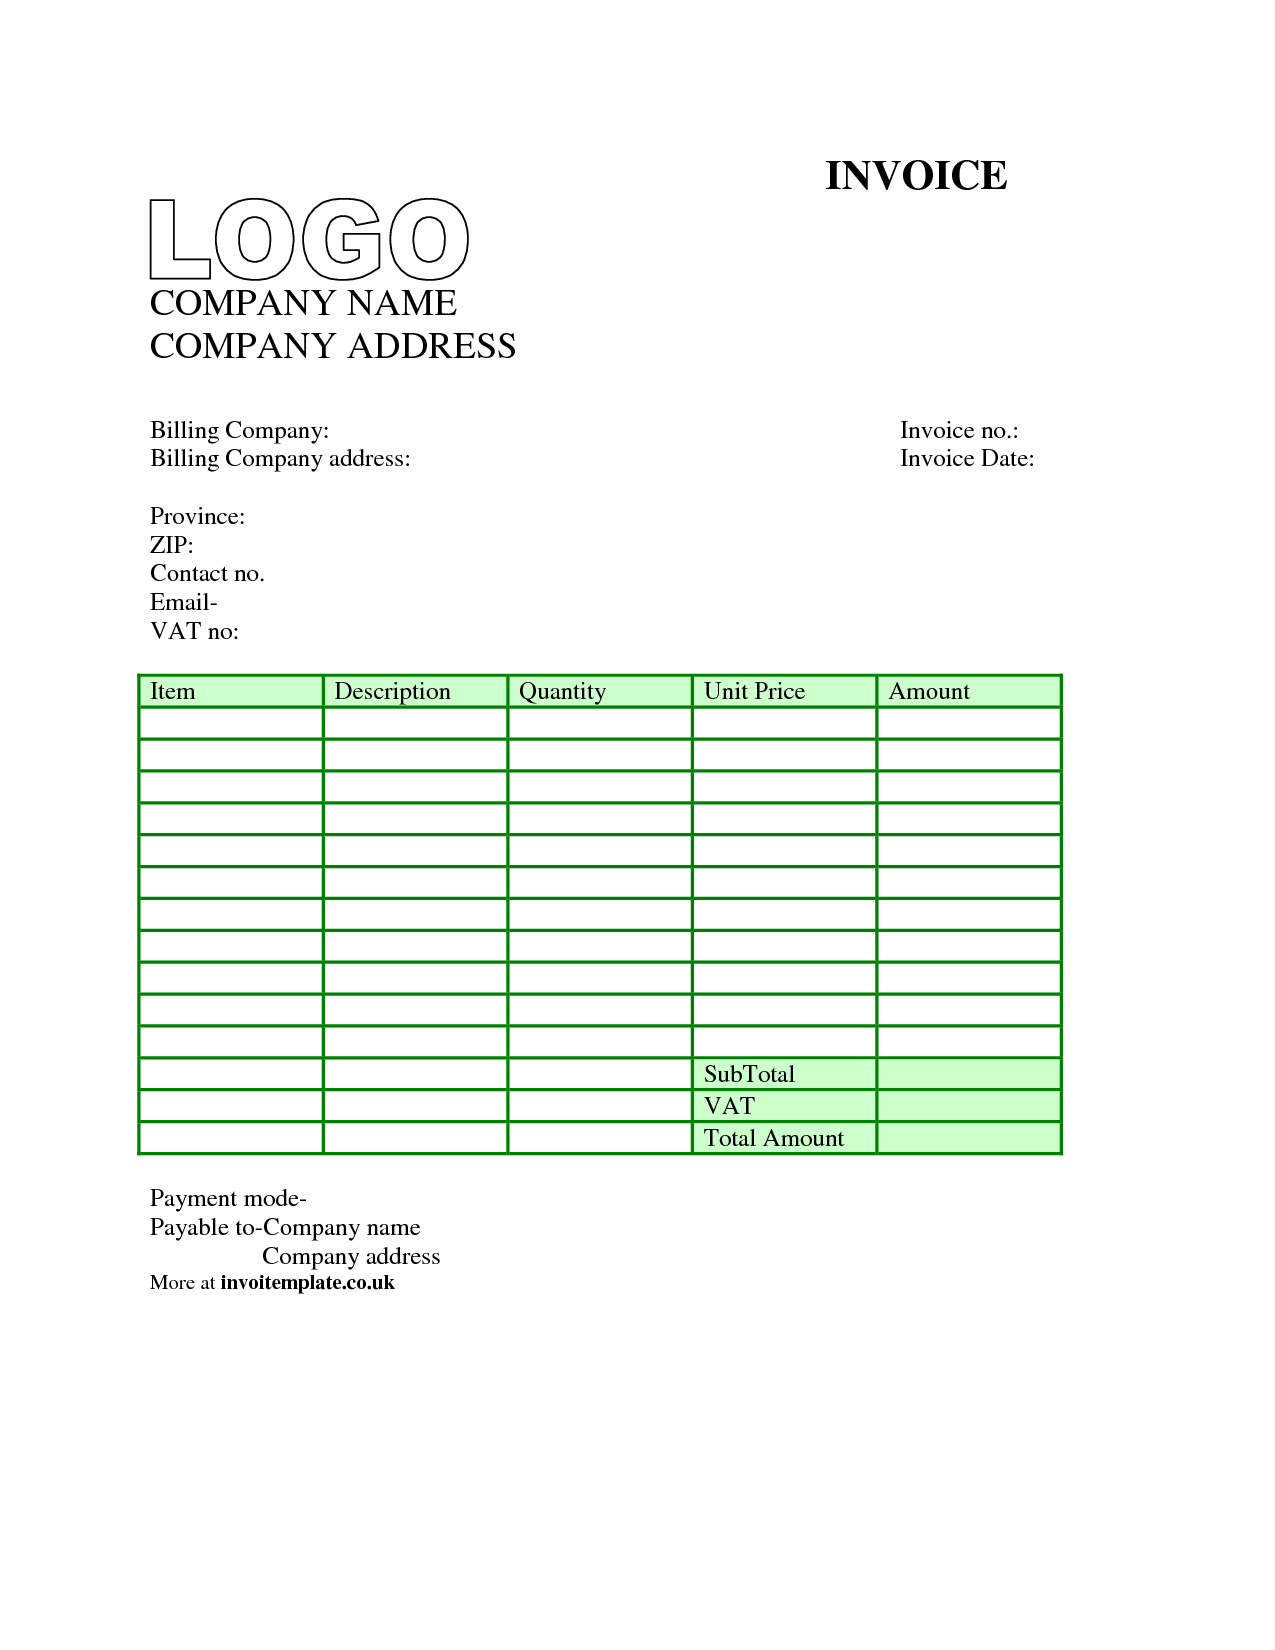 contractor invoice template uk | invoice example, Invoice examples